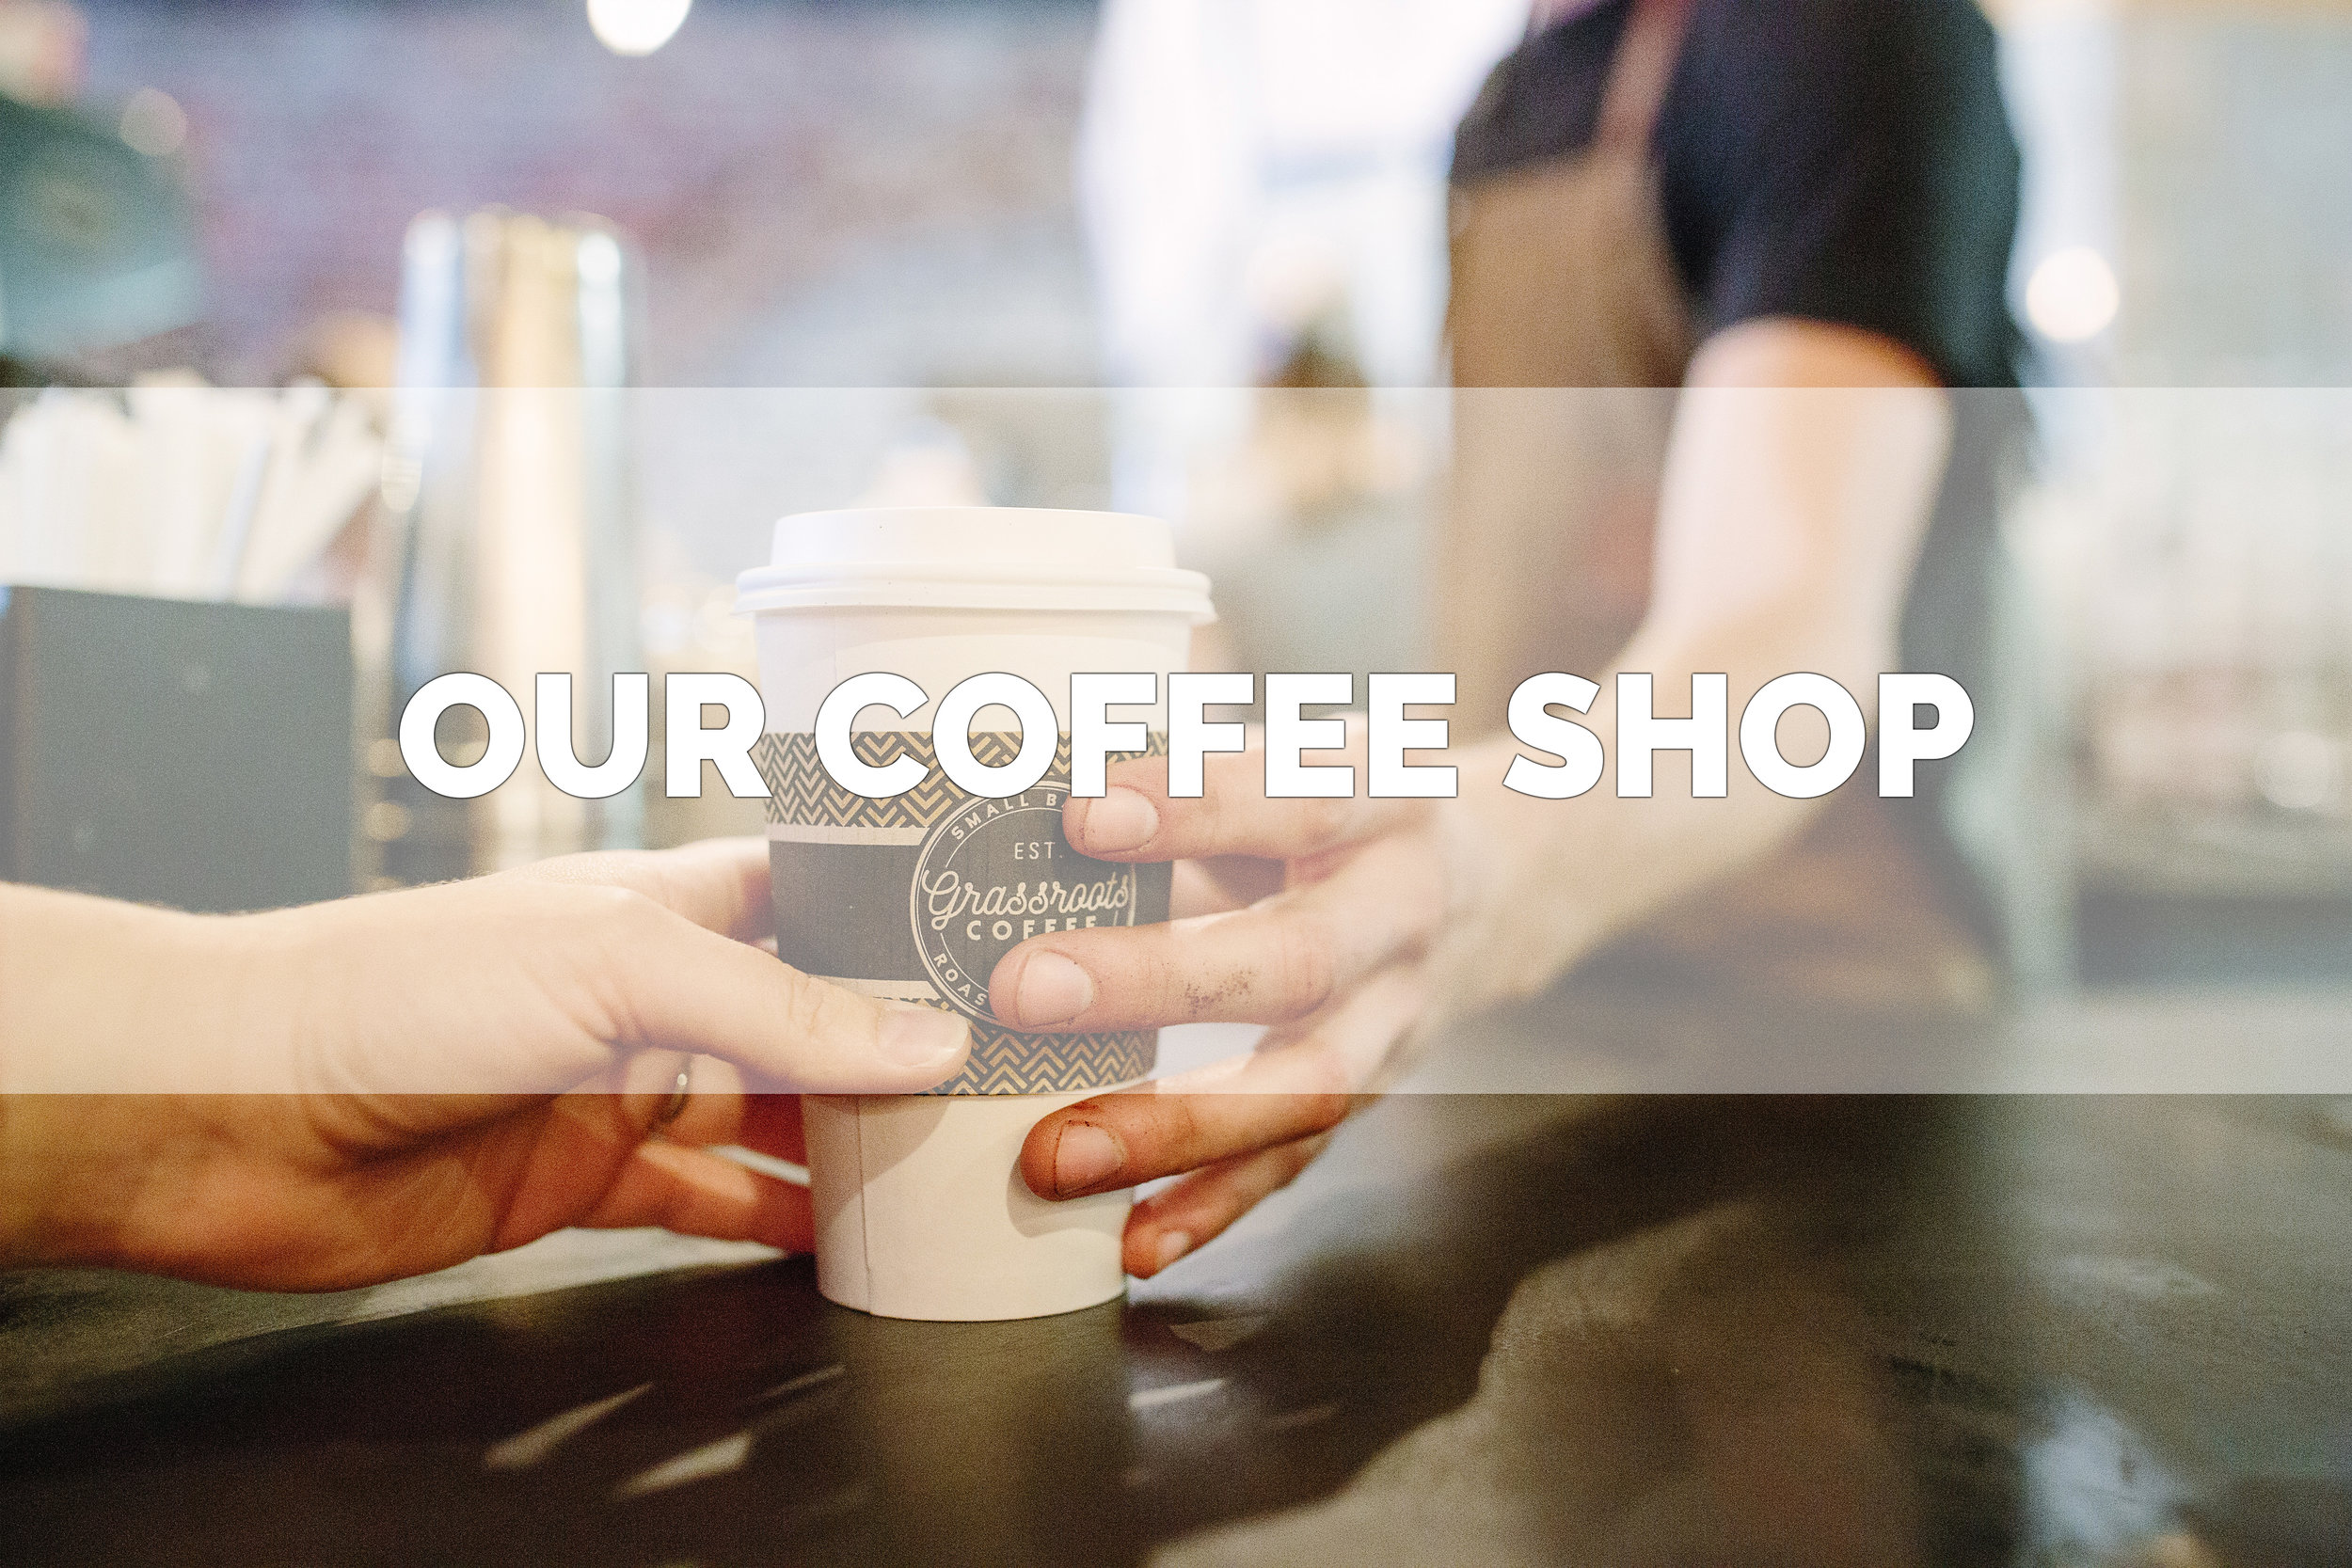 Get a fresh roasted cup at our coffee shop.